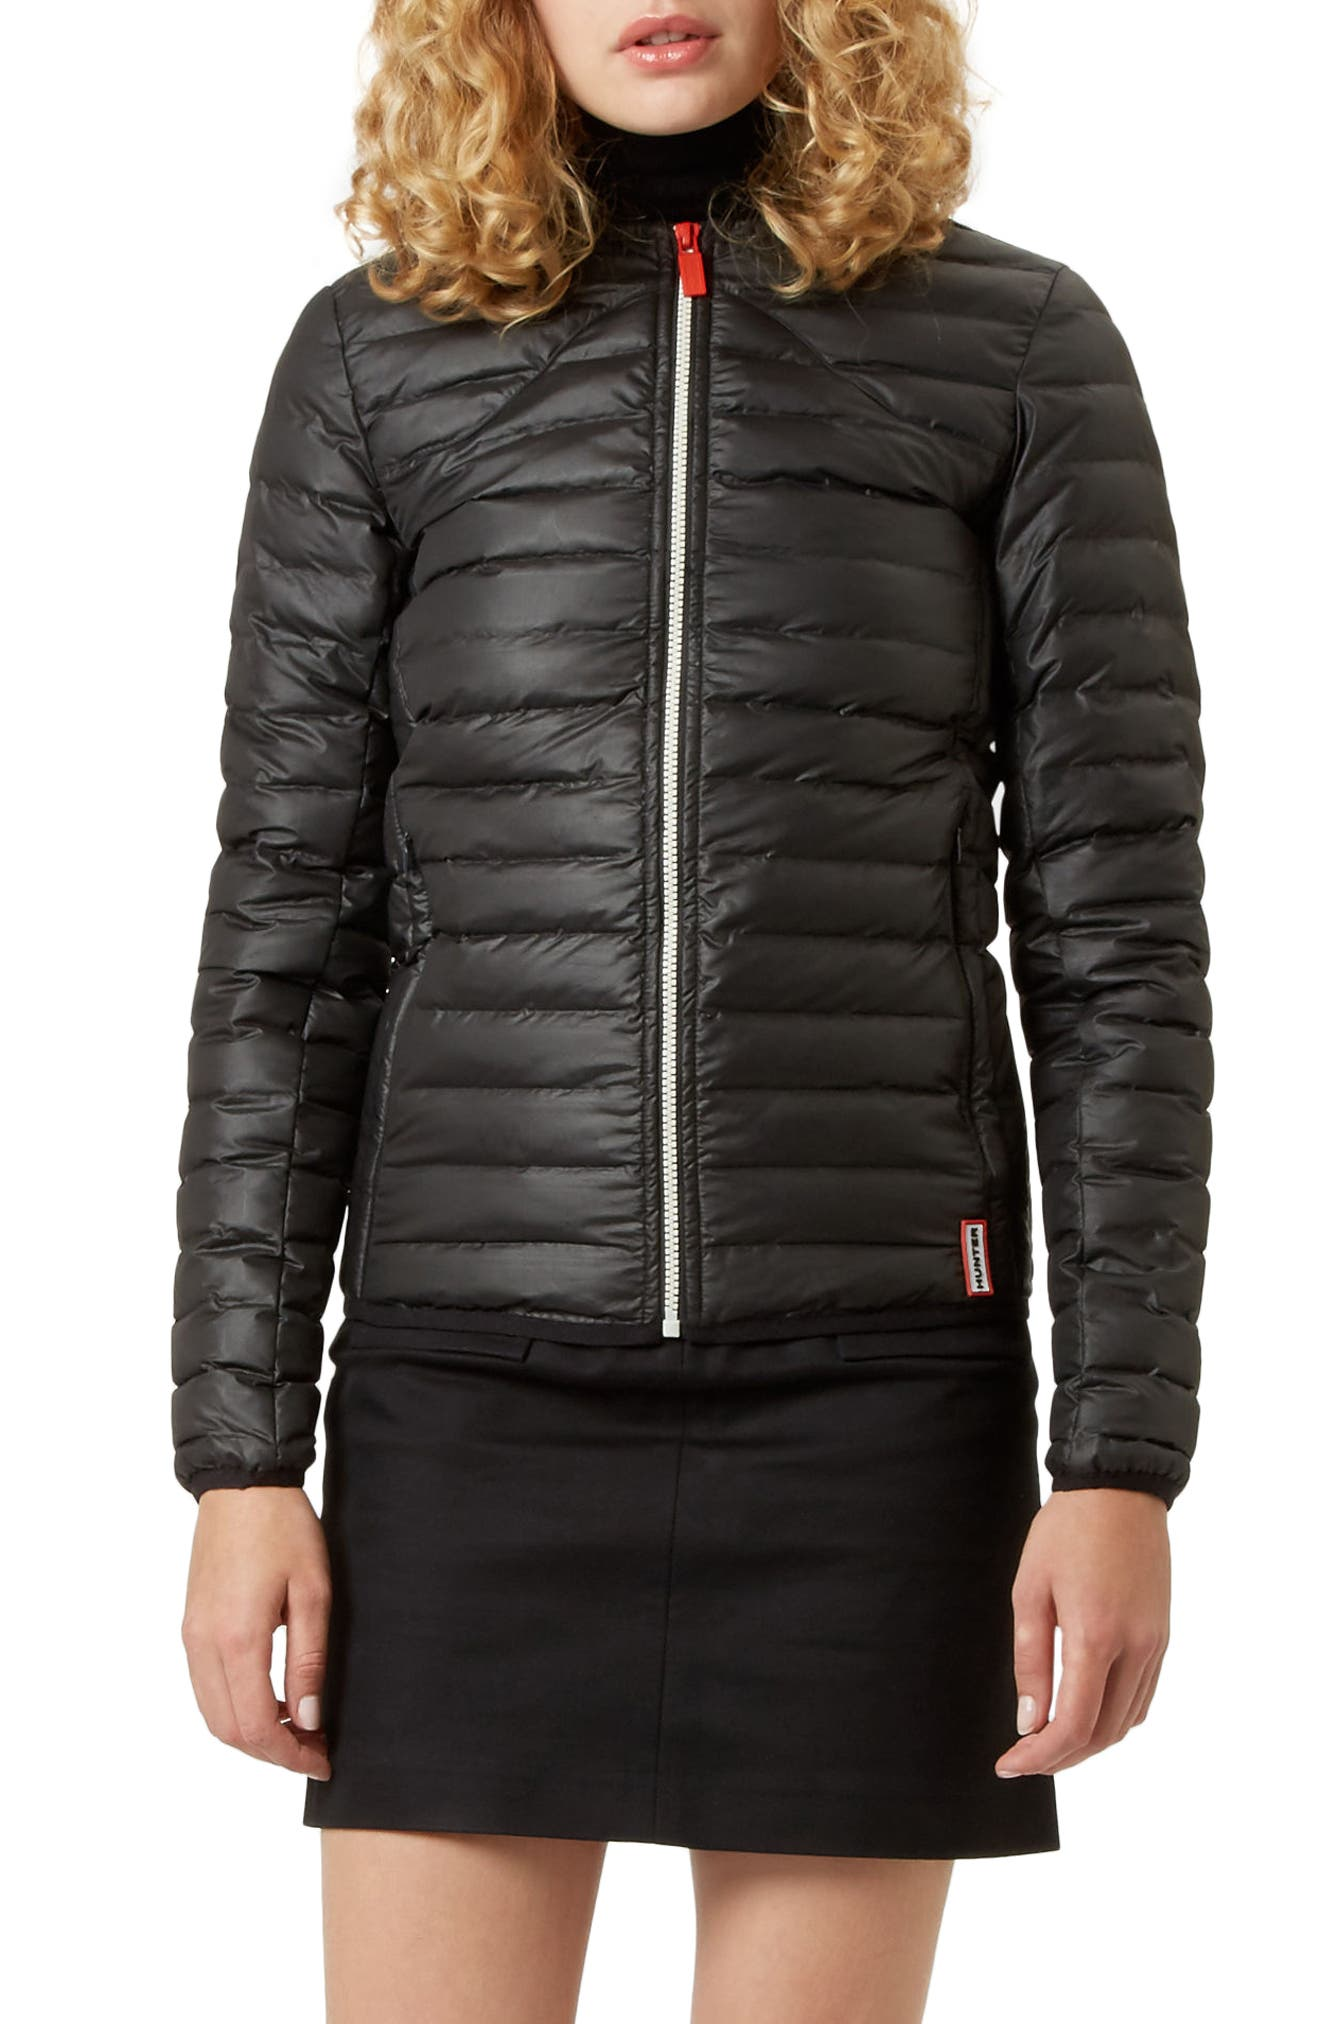 Alternate Image 1 Selected - Hunter Original Midlayer Water Resistant Thermolite® Insulated Jacket